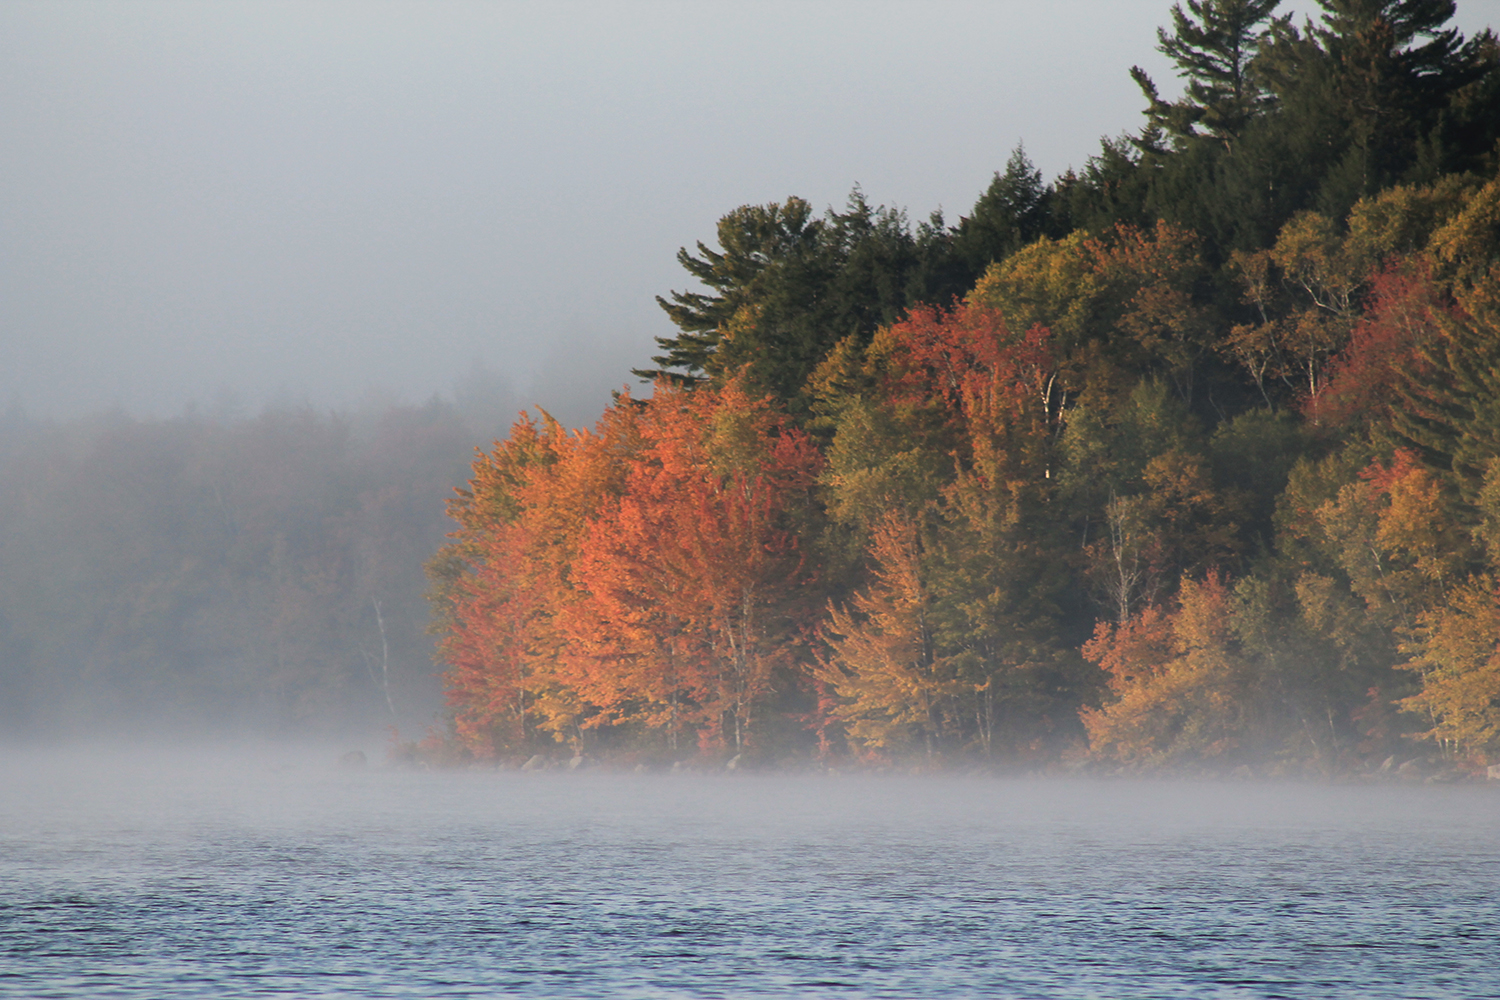 An early mist rises over Great Pond with October's vivid colors on display, and Diane McMaster of Falmouth was there to capture the image.